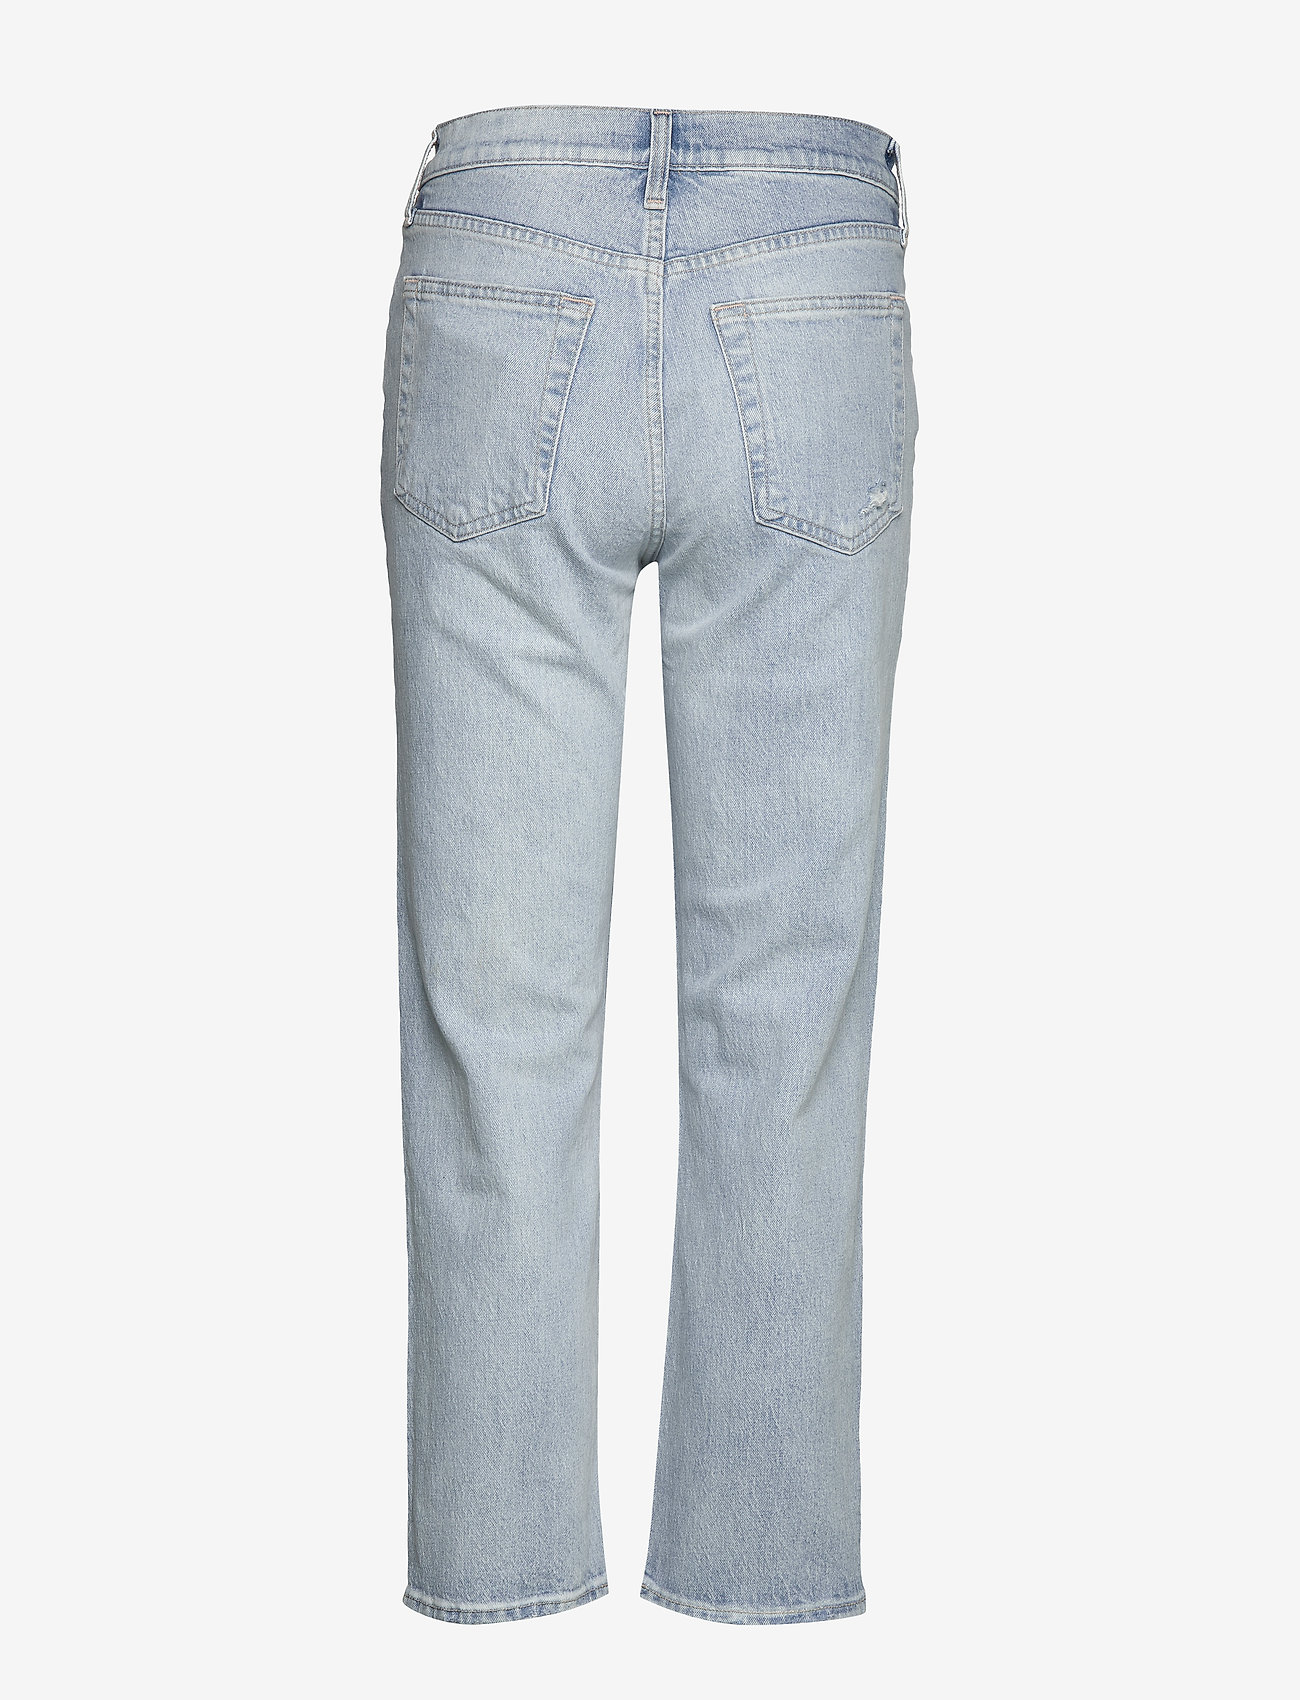 High Rise Distressed Cheeky Straight Jeans (Light Indigo Destroy) (40.50 €) - GAP NfjPf